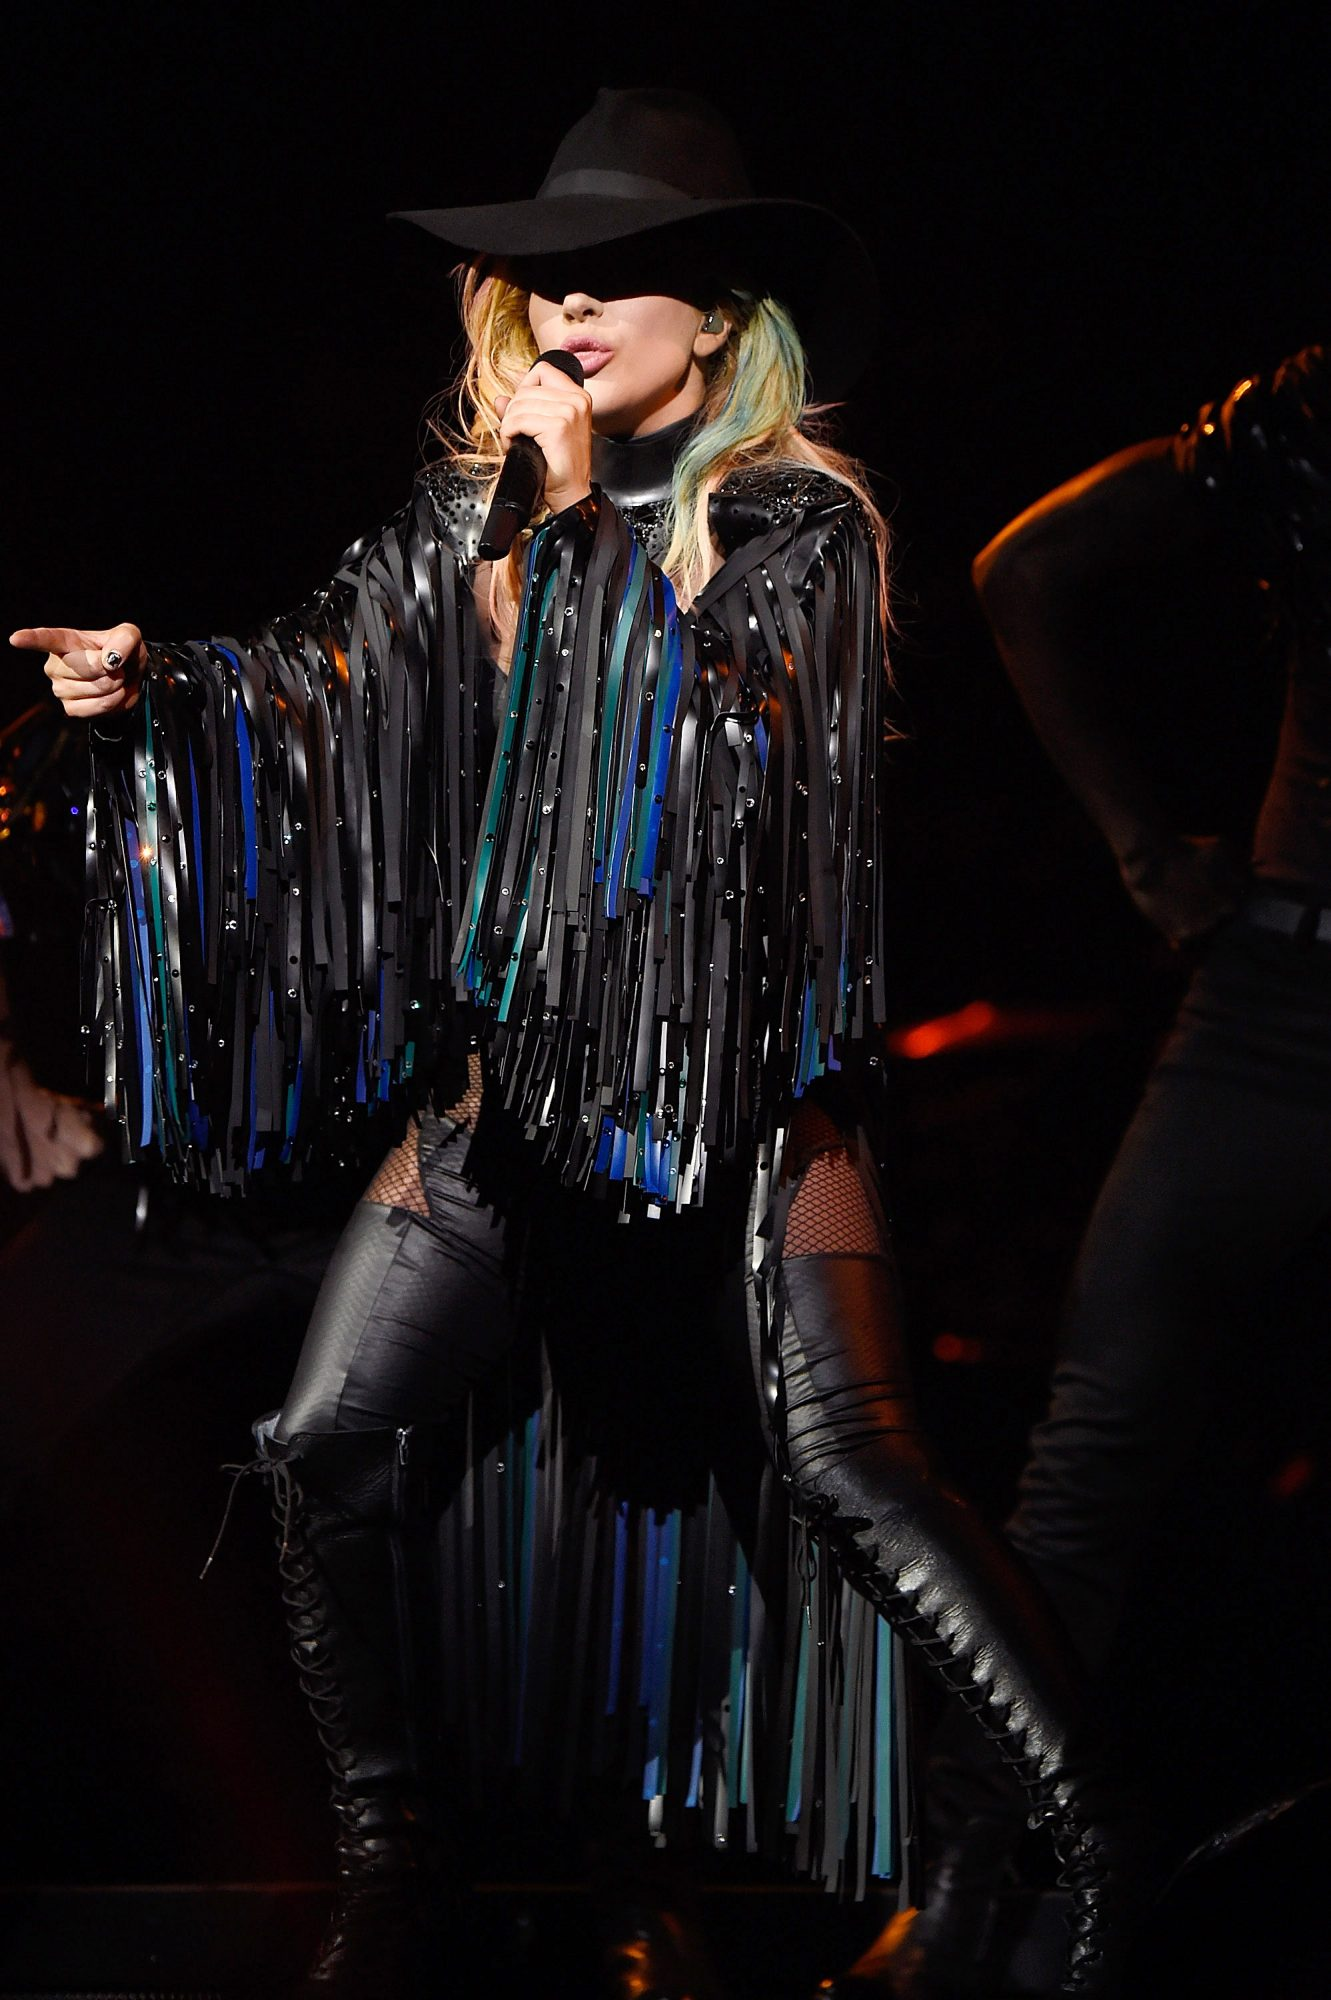 <p>ROCK-AND-ROLL MEETS COUNTRY</p>